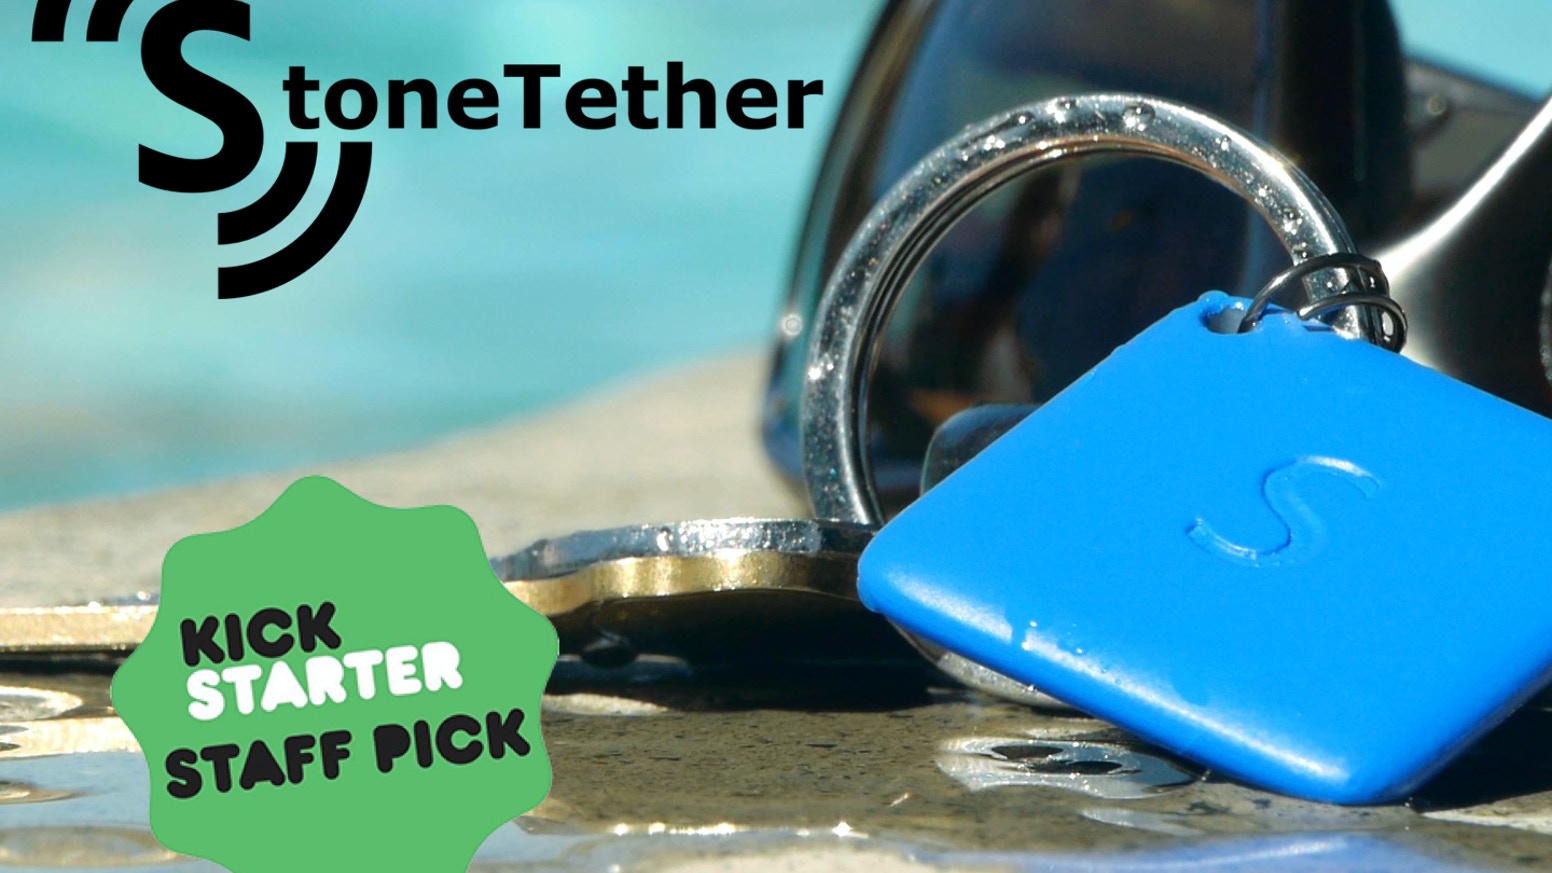 StoneTether - The Smallest Tracking Device at Long Range by